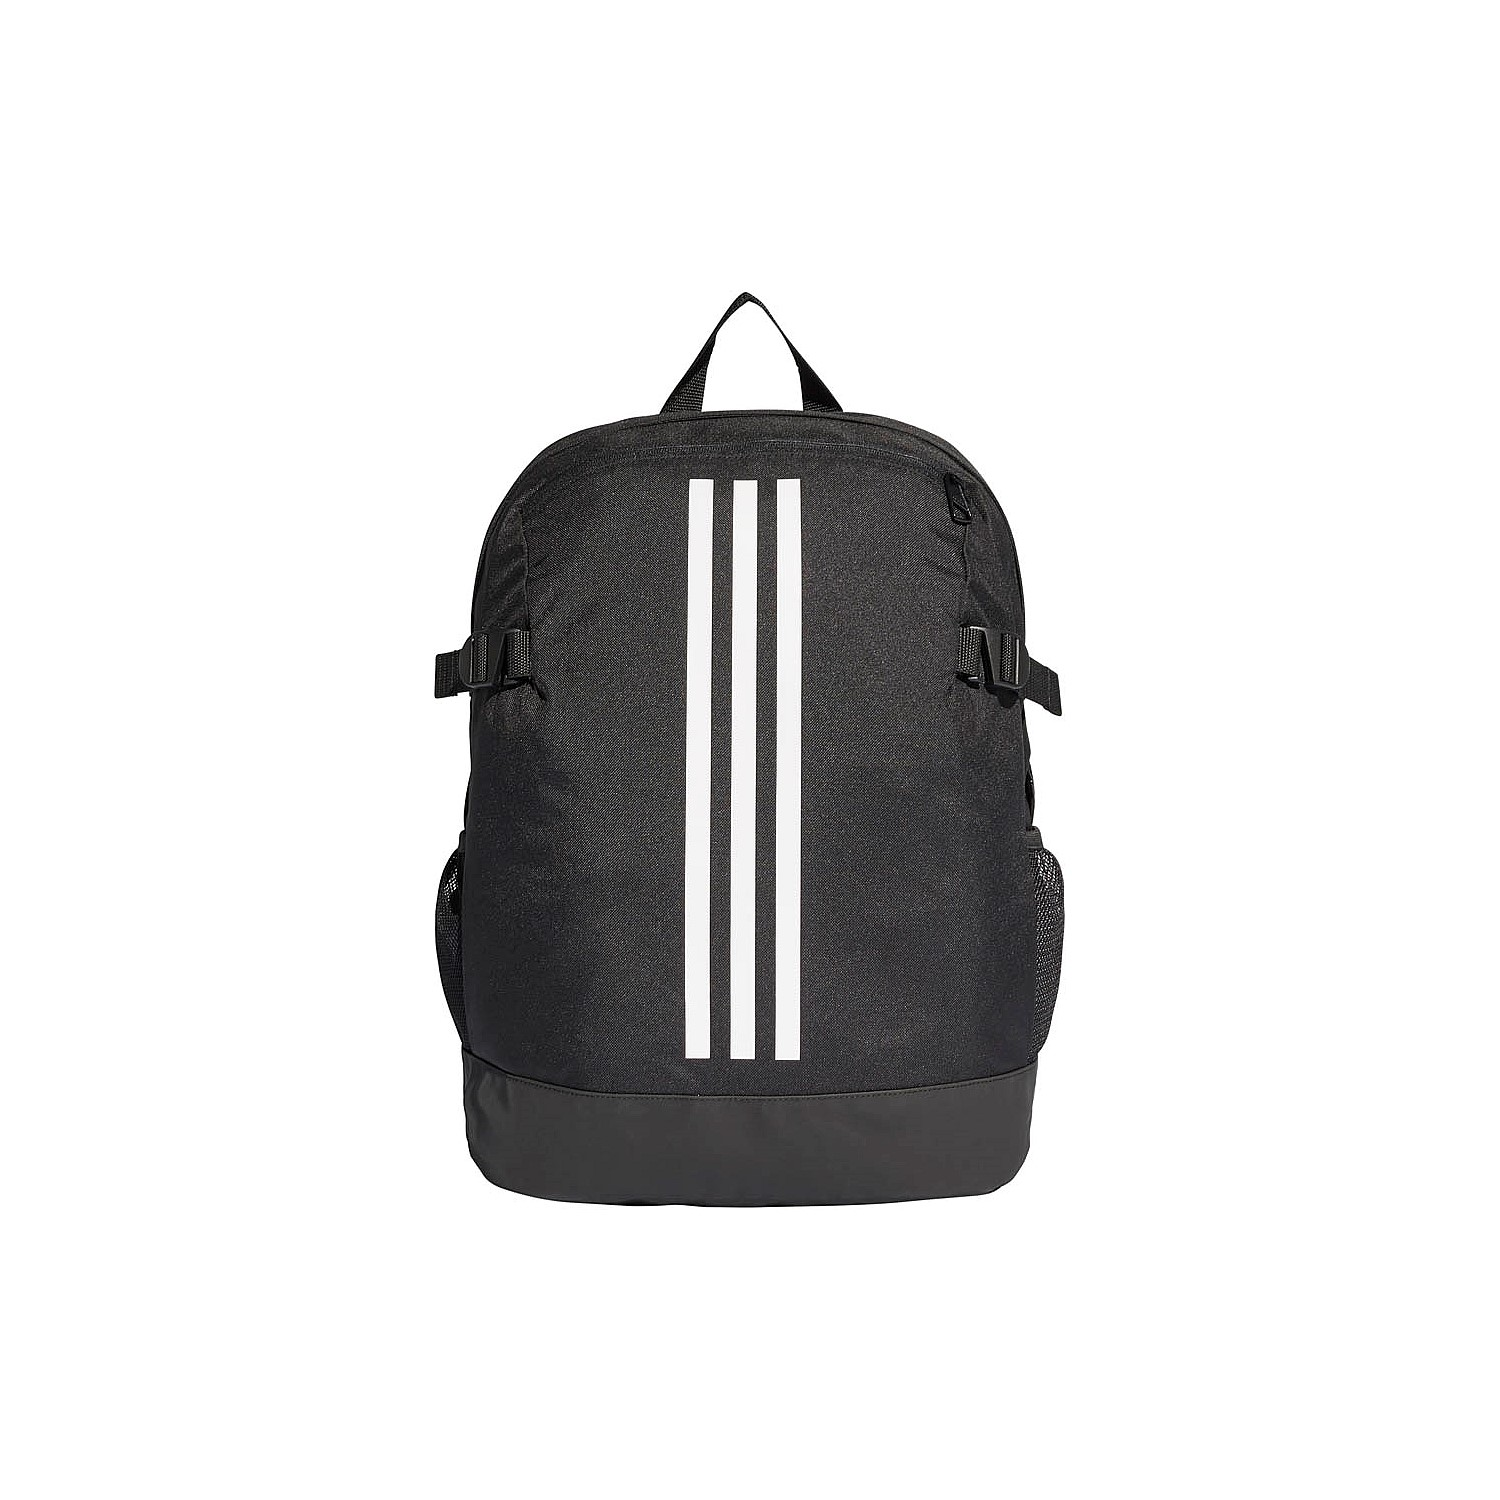 c46f11109 Men's Accessories | Men's Lifestyle and Training Accessories | Stirling  Sports - 3-Stripes Power Backpack